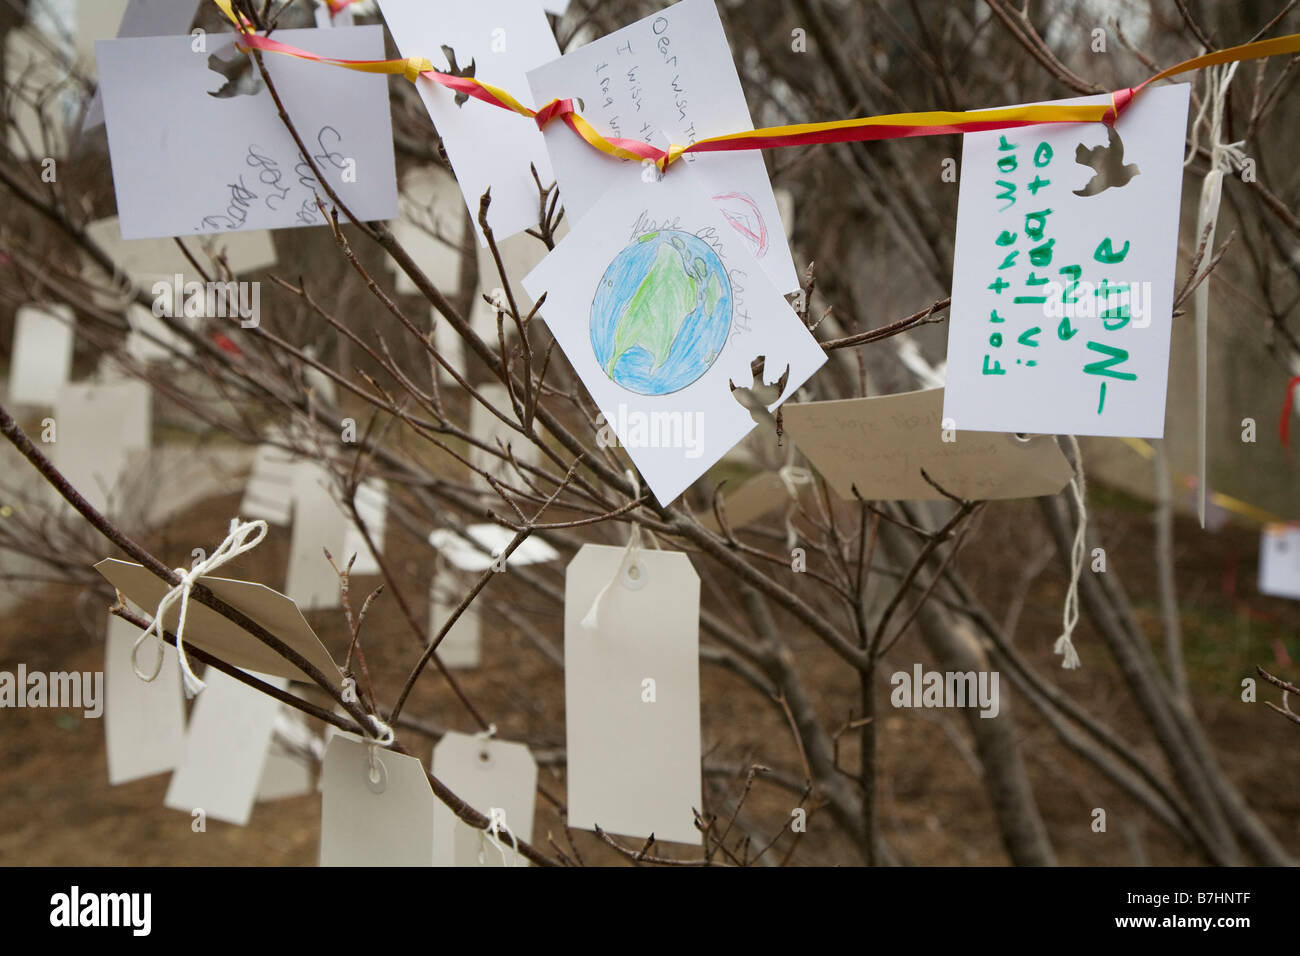 Wishes for the future left by people visiting Washington for the presidential inauguration of Barack Obama - Stock Image